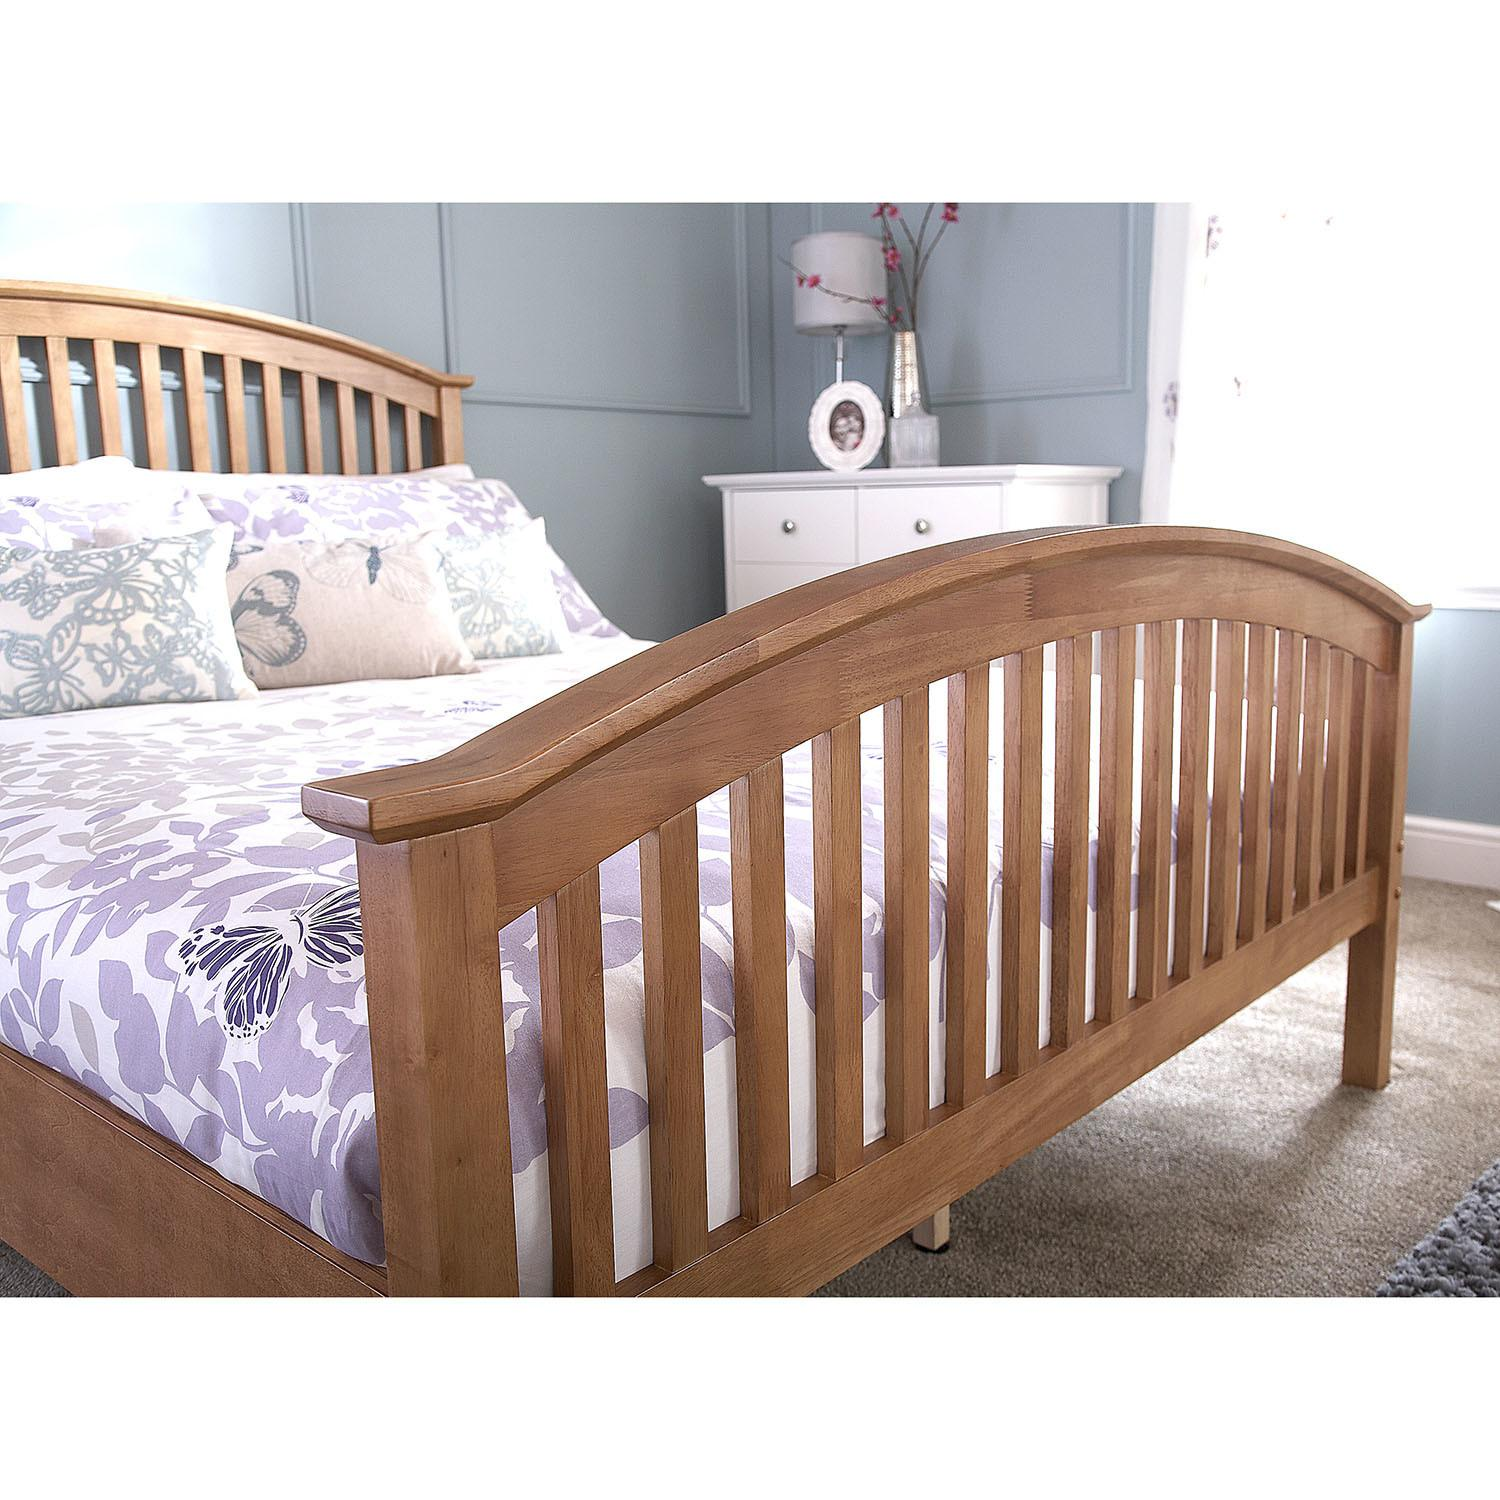 Madrid Natural High End Wooden Bed Next Day Select